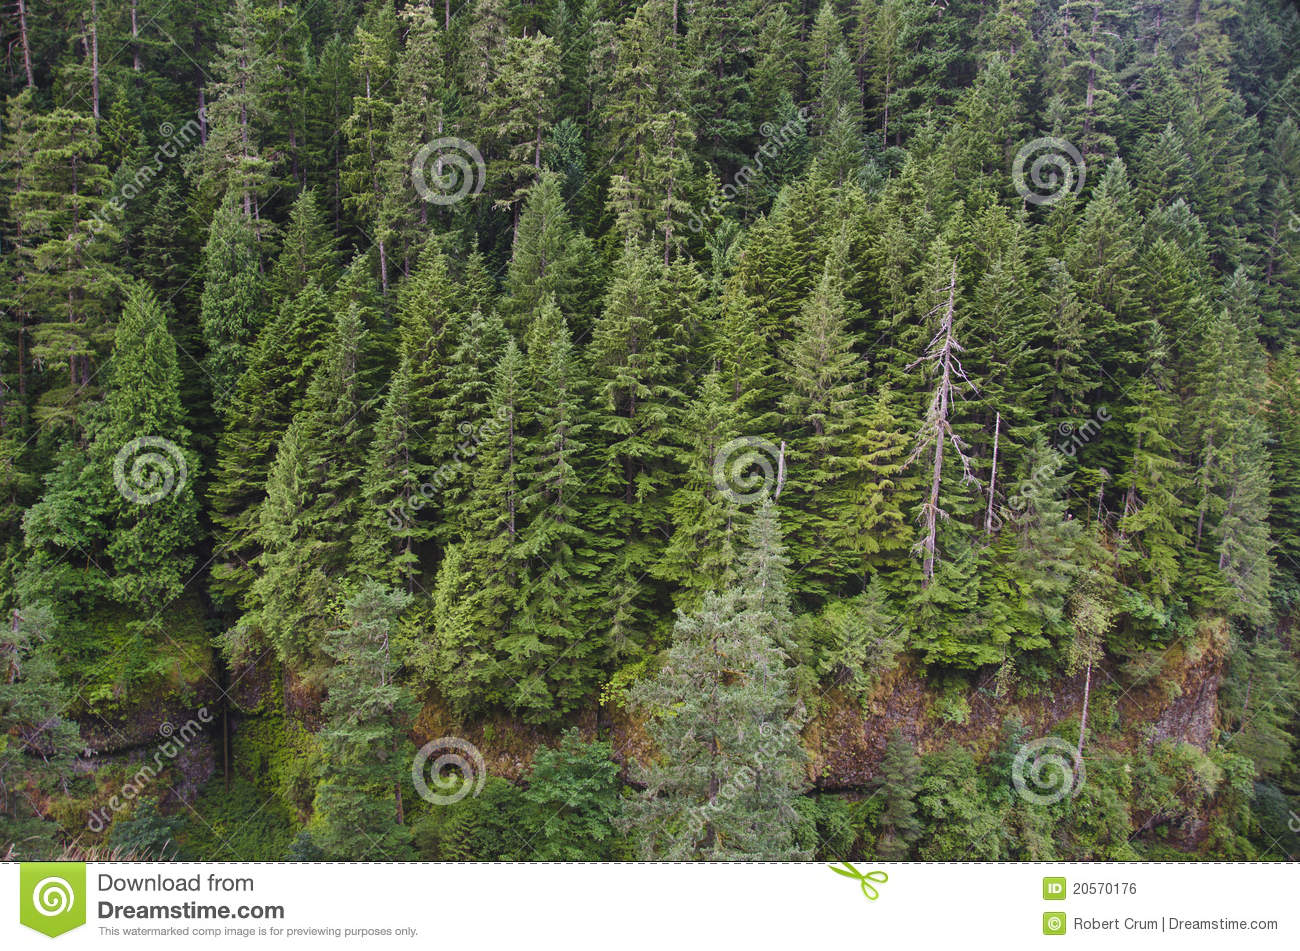 Douglas fir forest stock photo. Image of northwest, columbia - 20570176